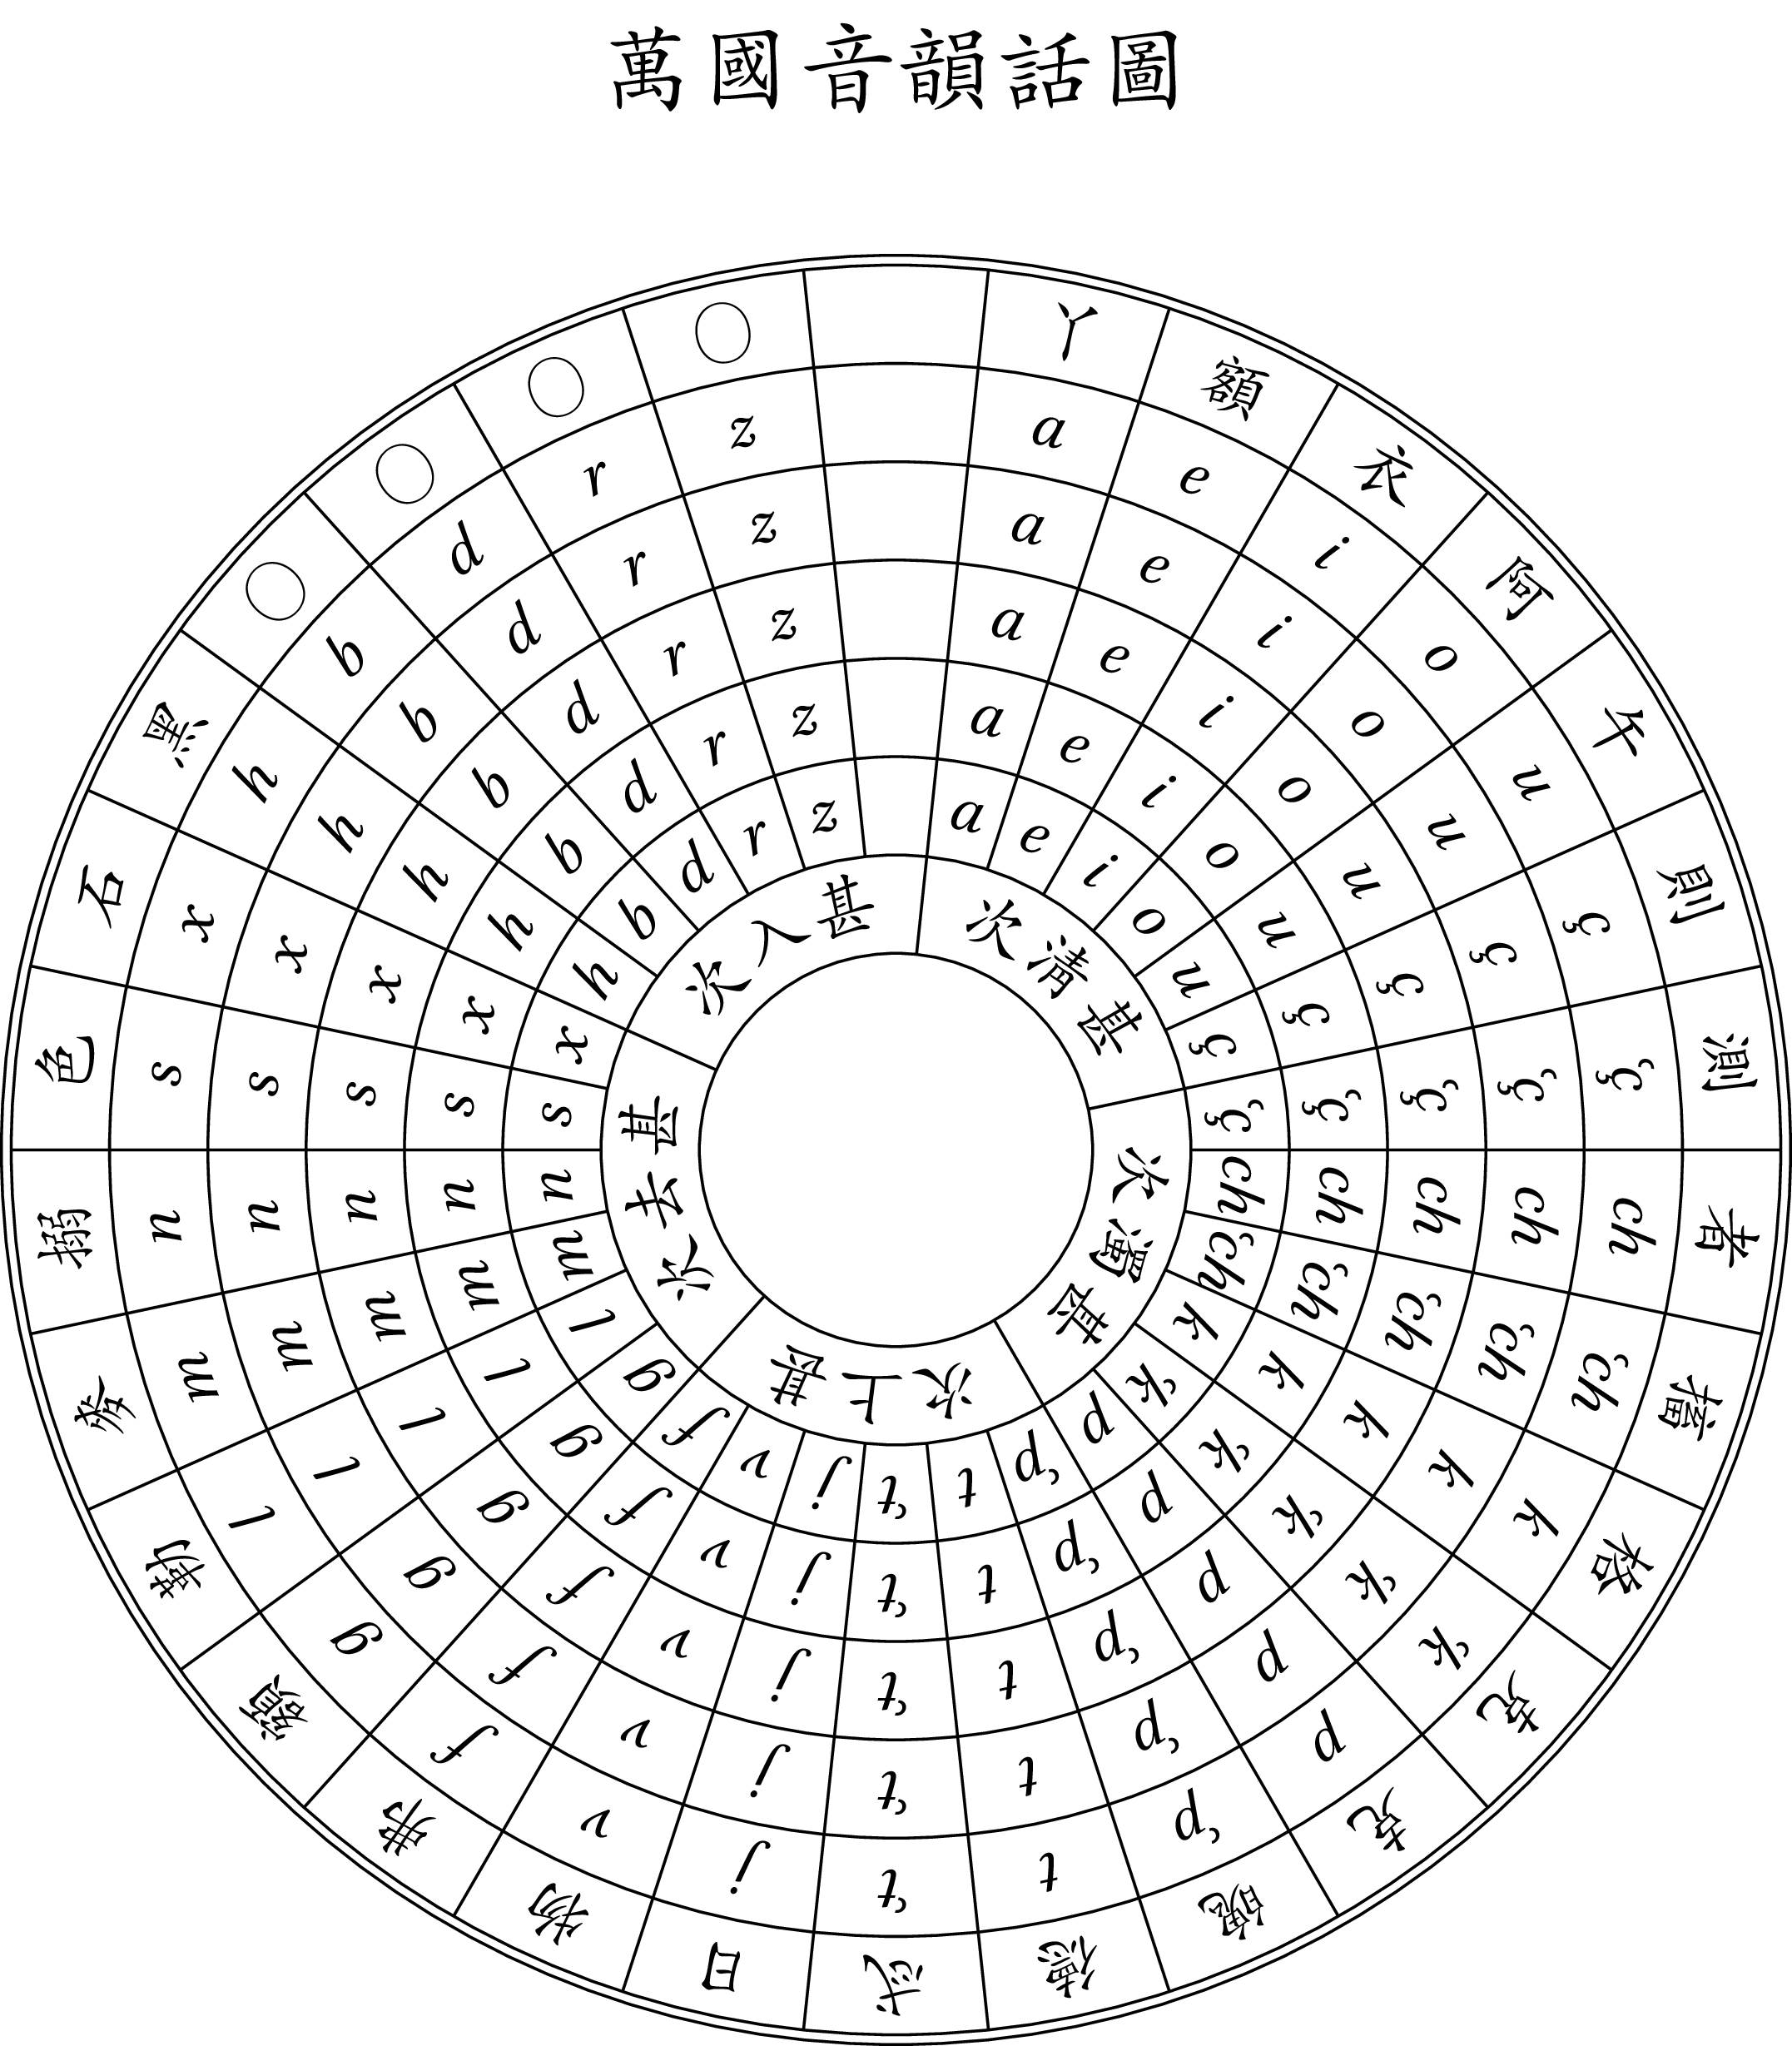 360 degree circle diagram 1999 sportster wiring diagrams a circular table where the rows form concentric circles 3 answers